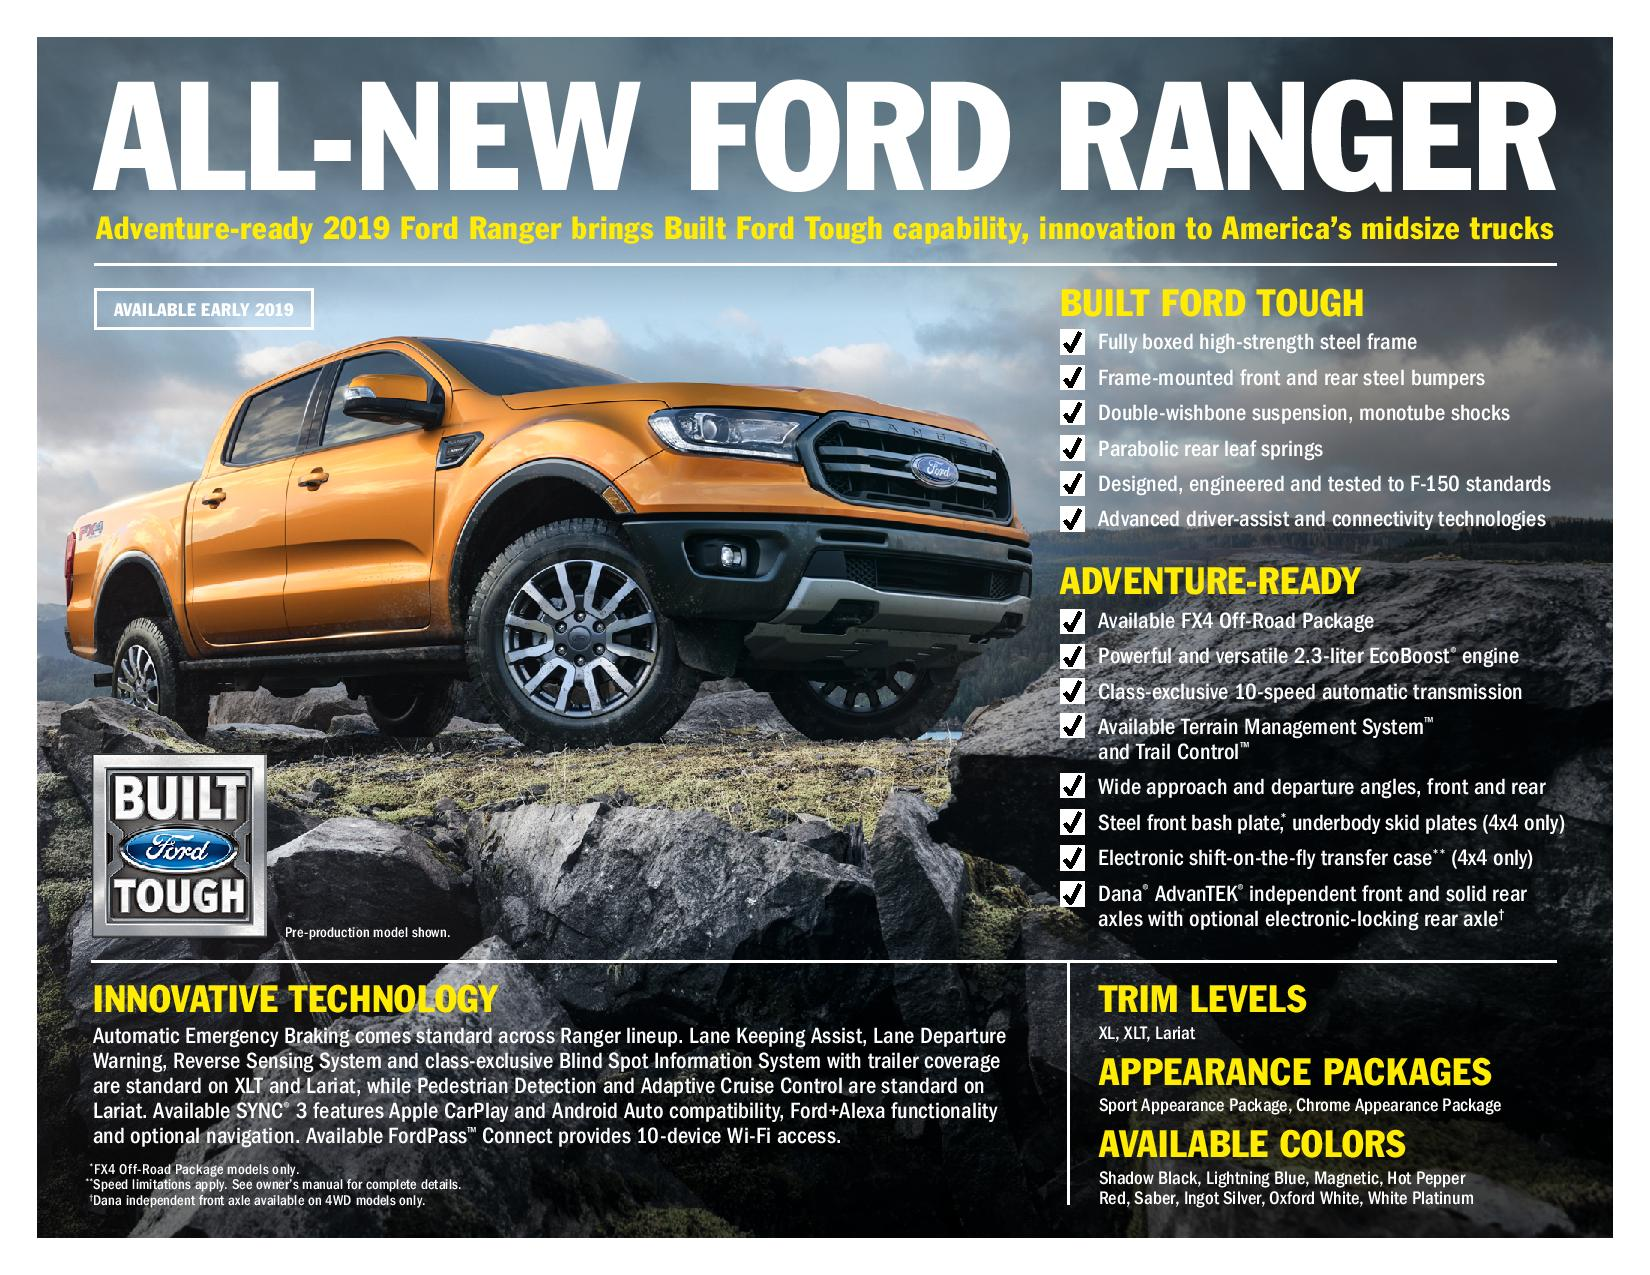 All-New 2019 Ranger Fact